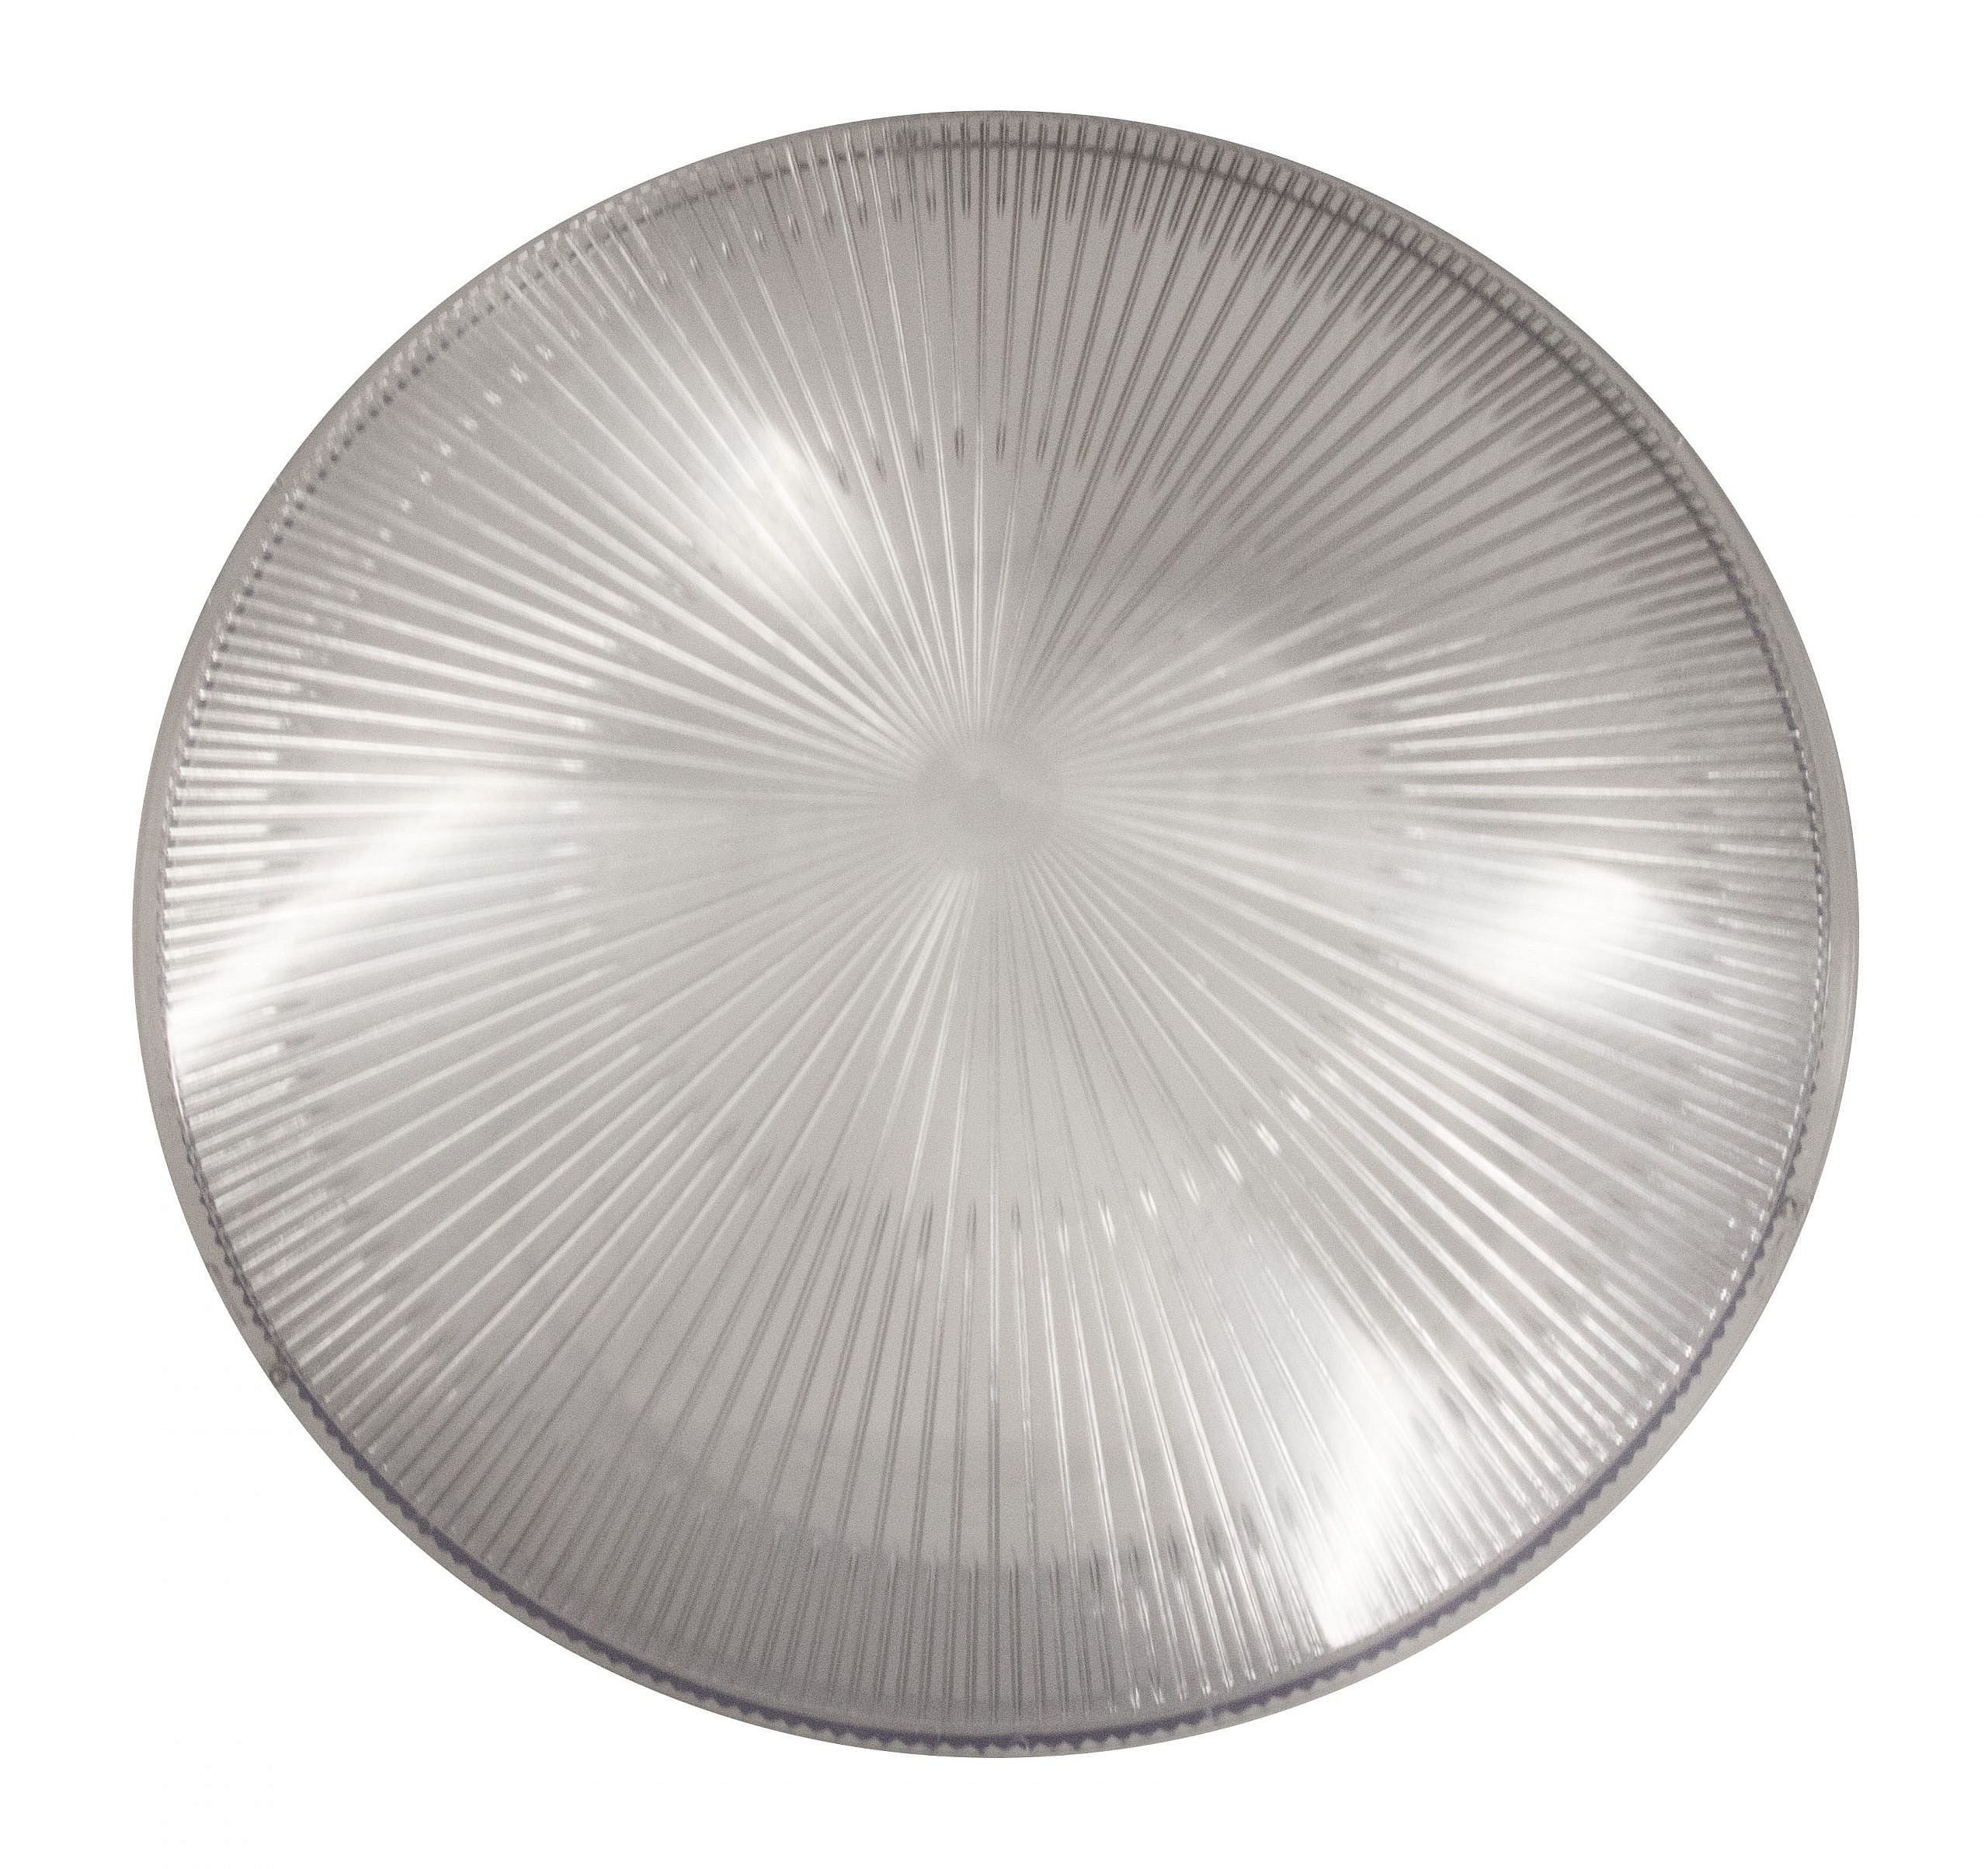 16″ Cone Bottom Cover Fits 100W/150W